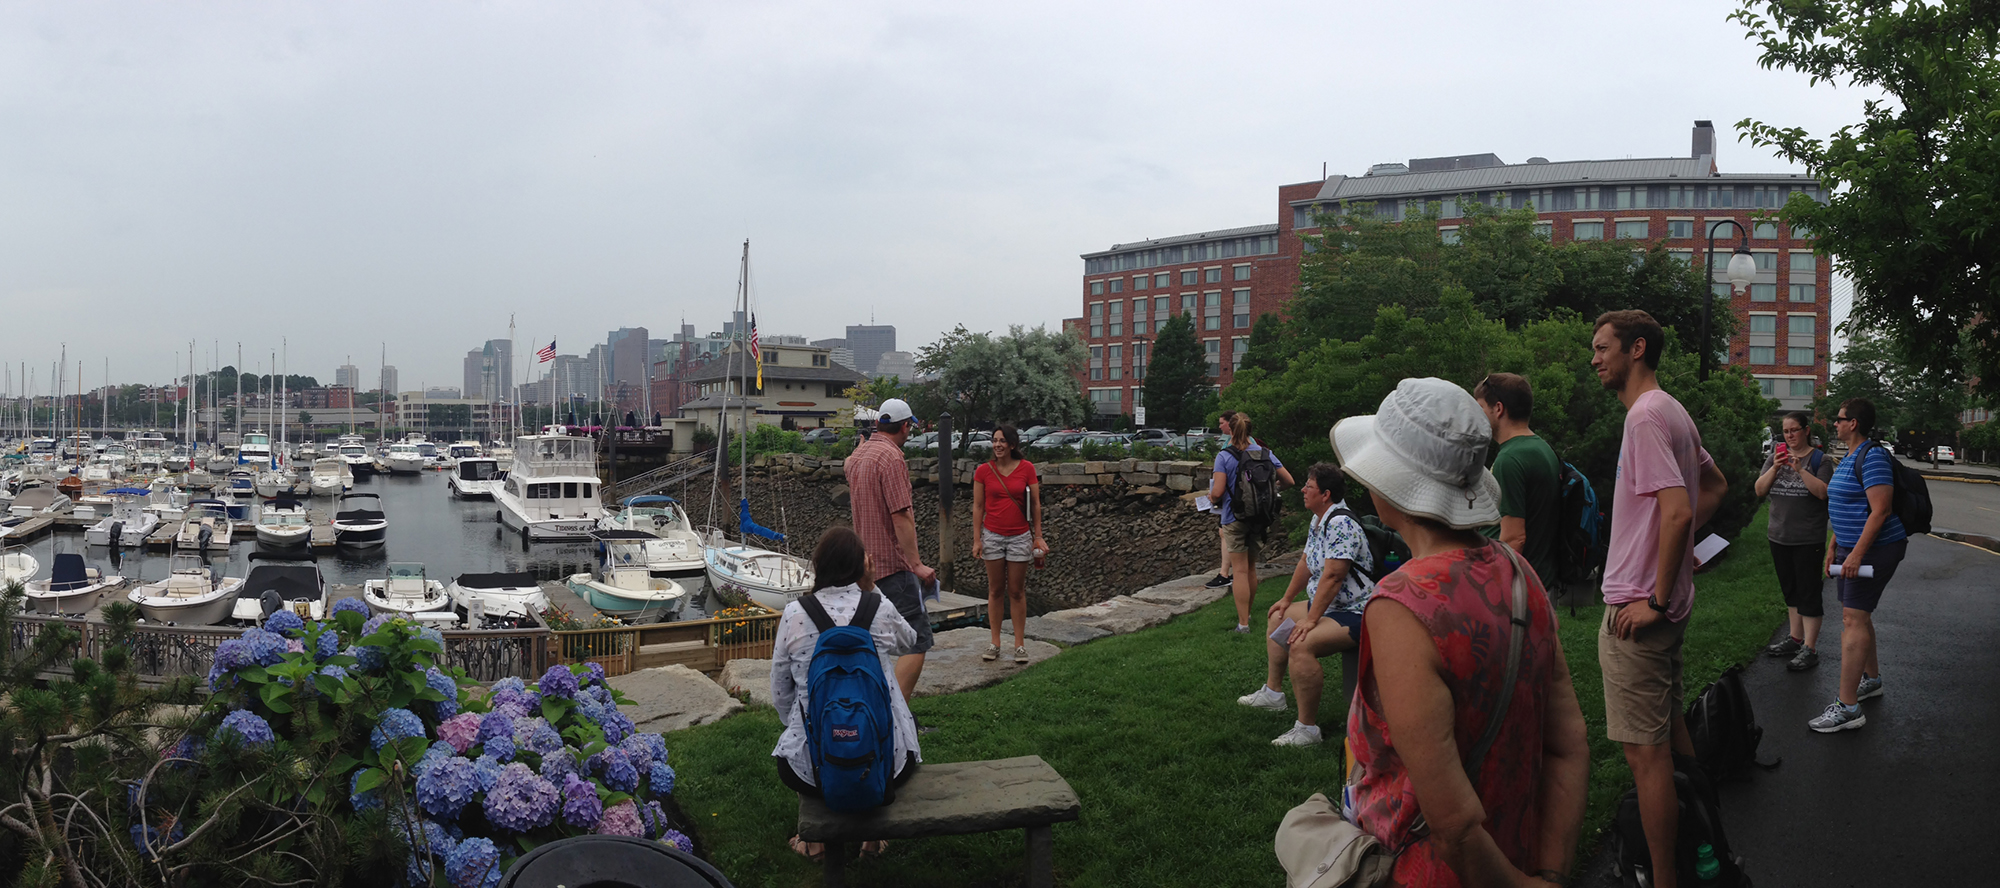 Students gathered at Boston Harbor, with skyline, sailboats, and greenspace